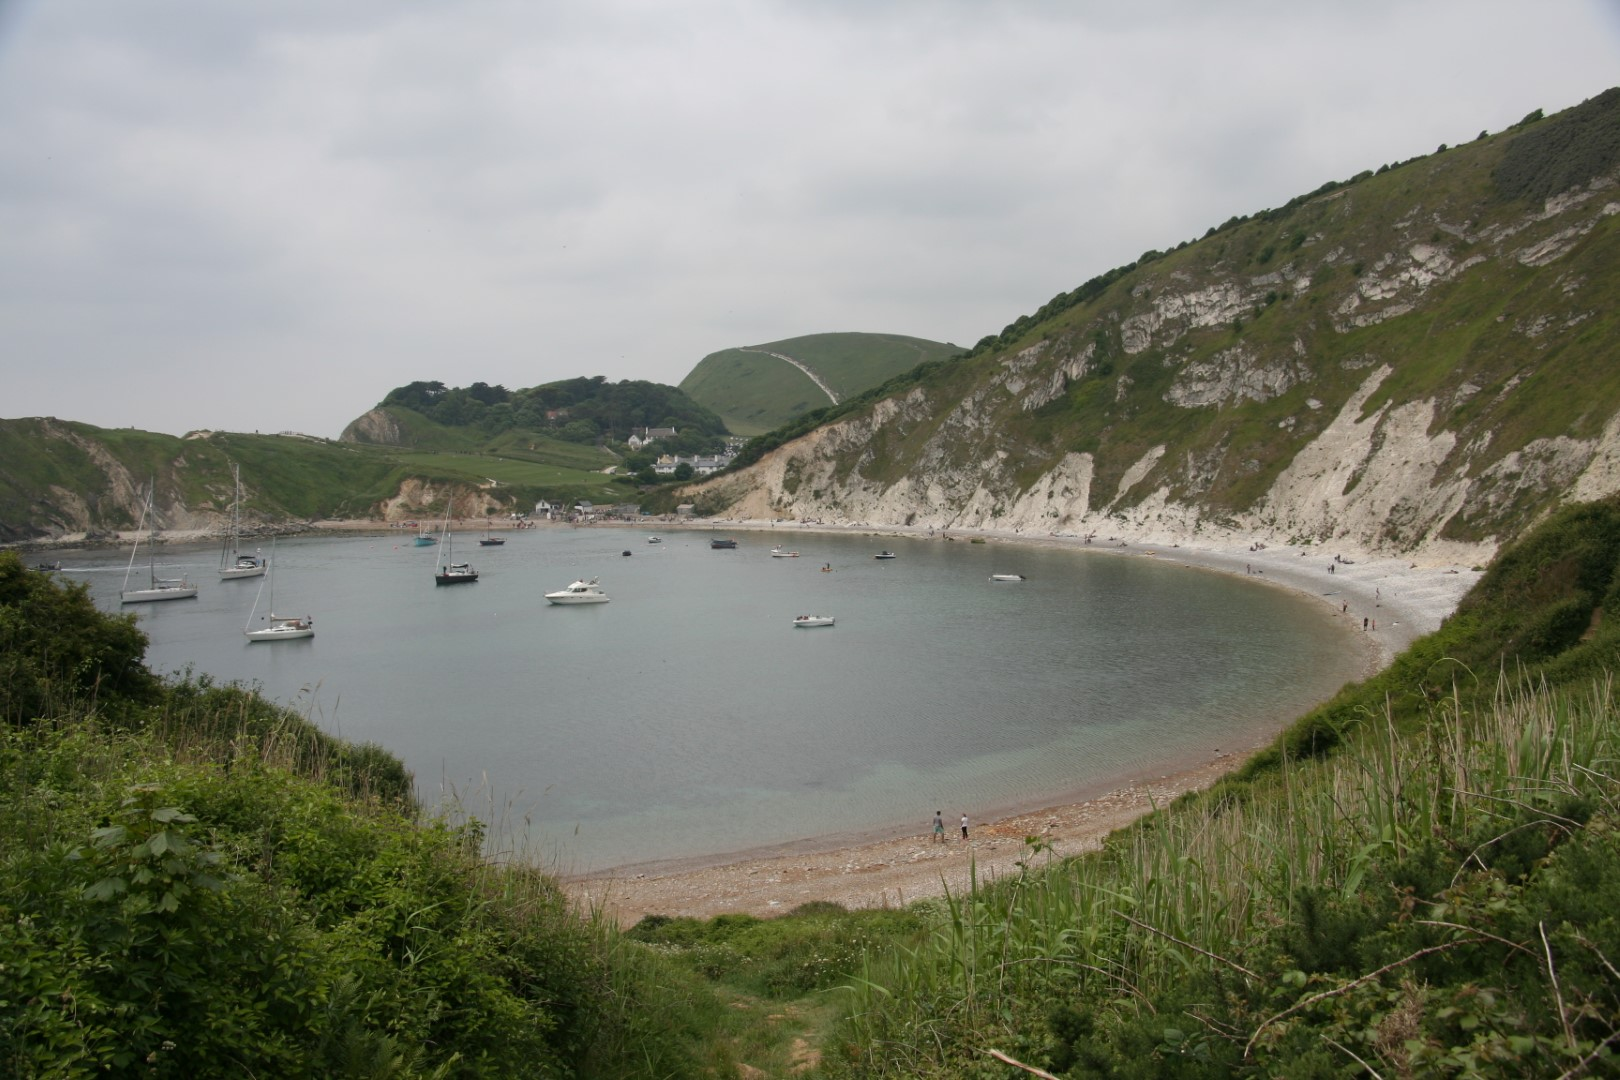 Lulworth Cove close up.